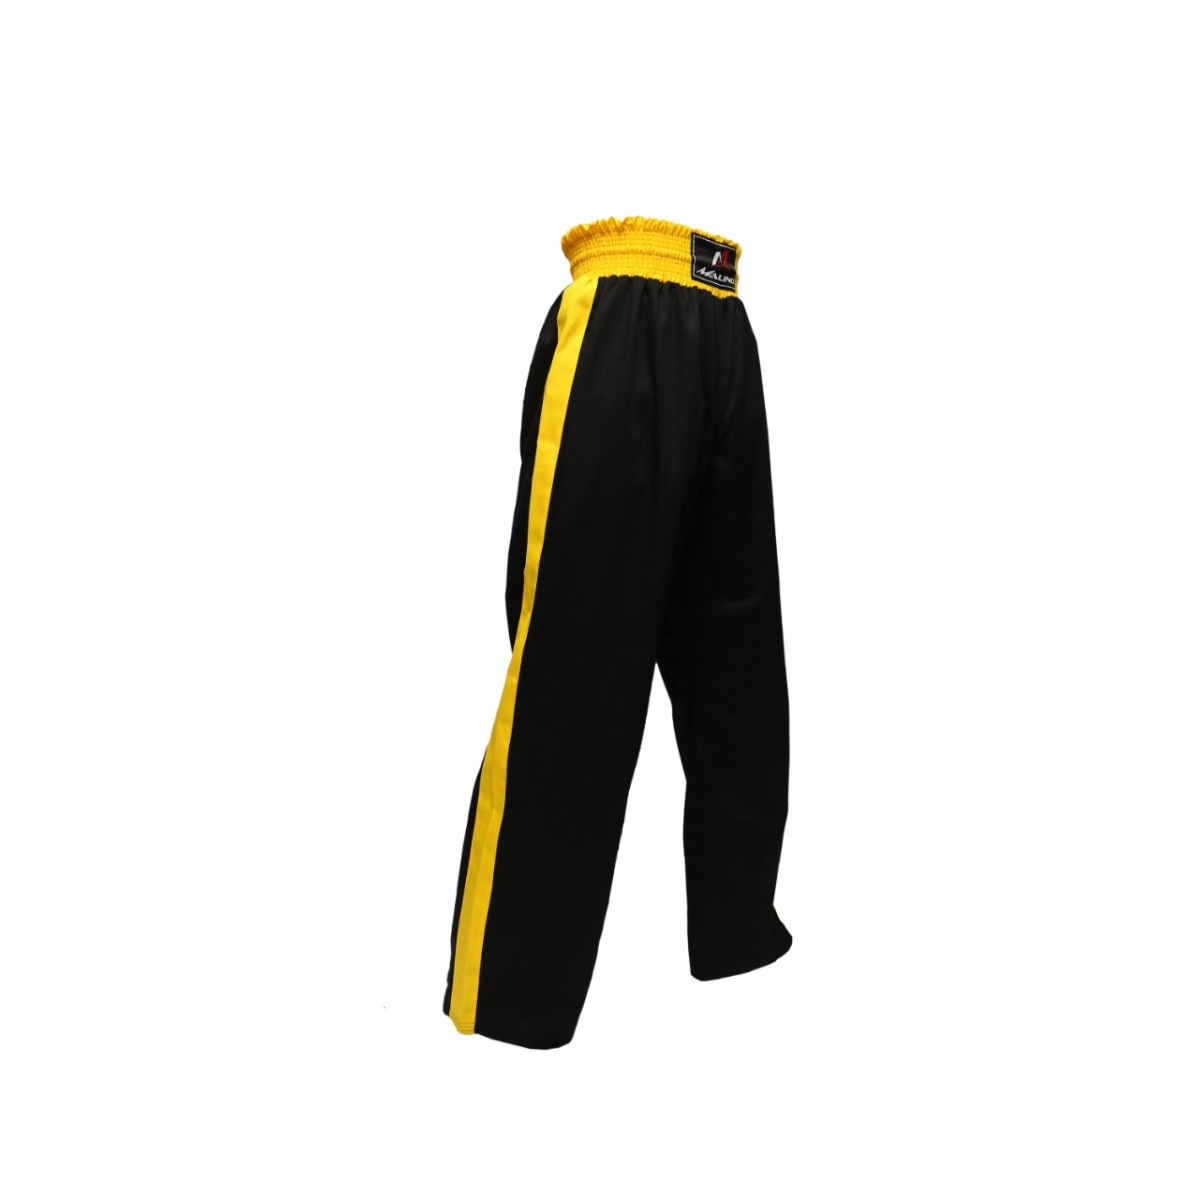 Malino Star Kickboxing Trouser Mix Martial Arts Training Poly Cotton Trouser Black Yellow